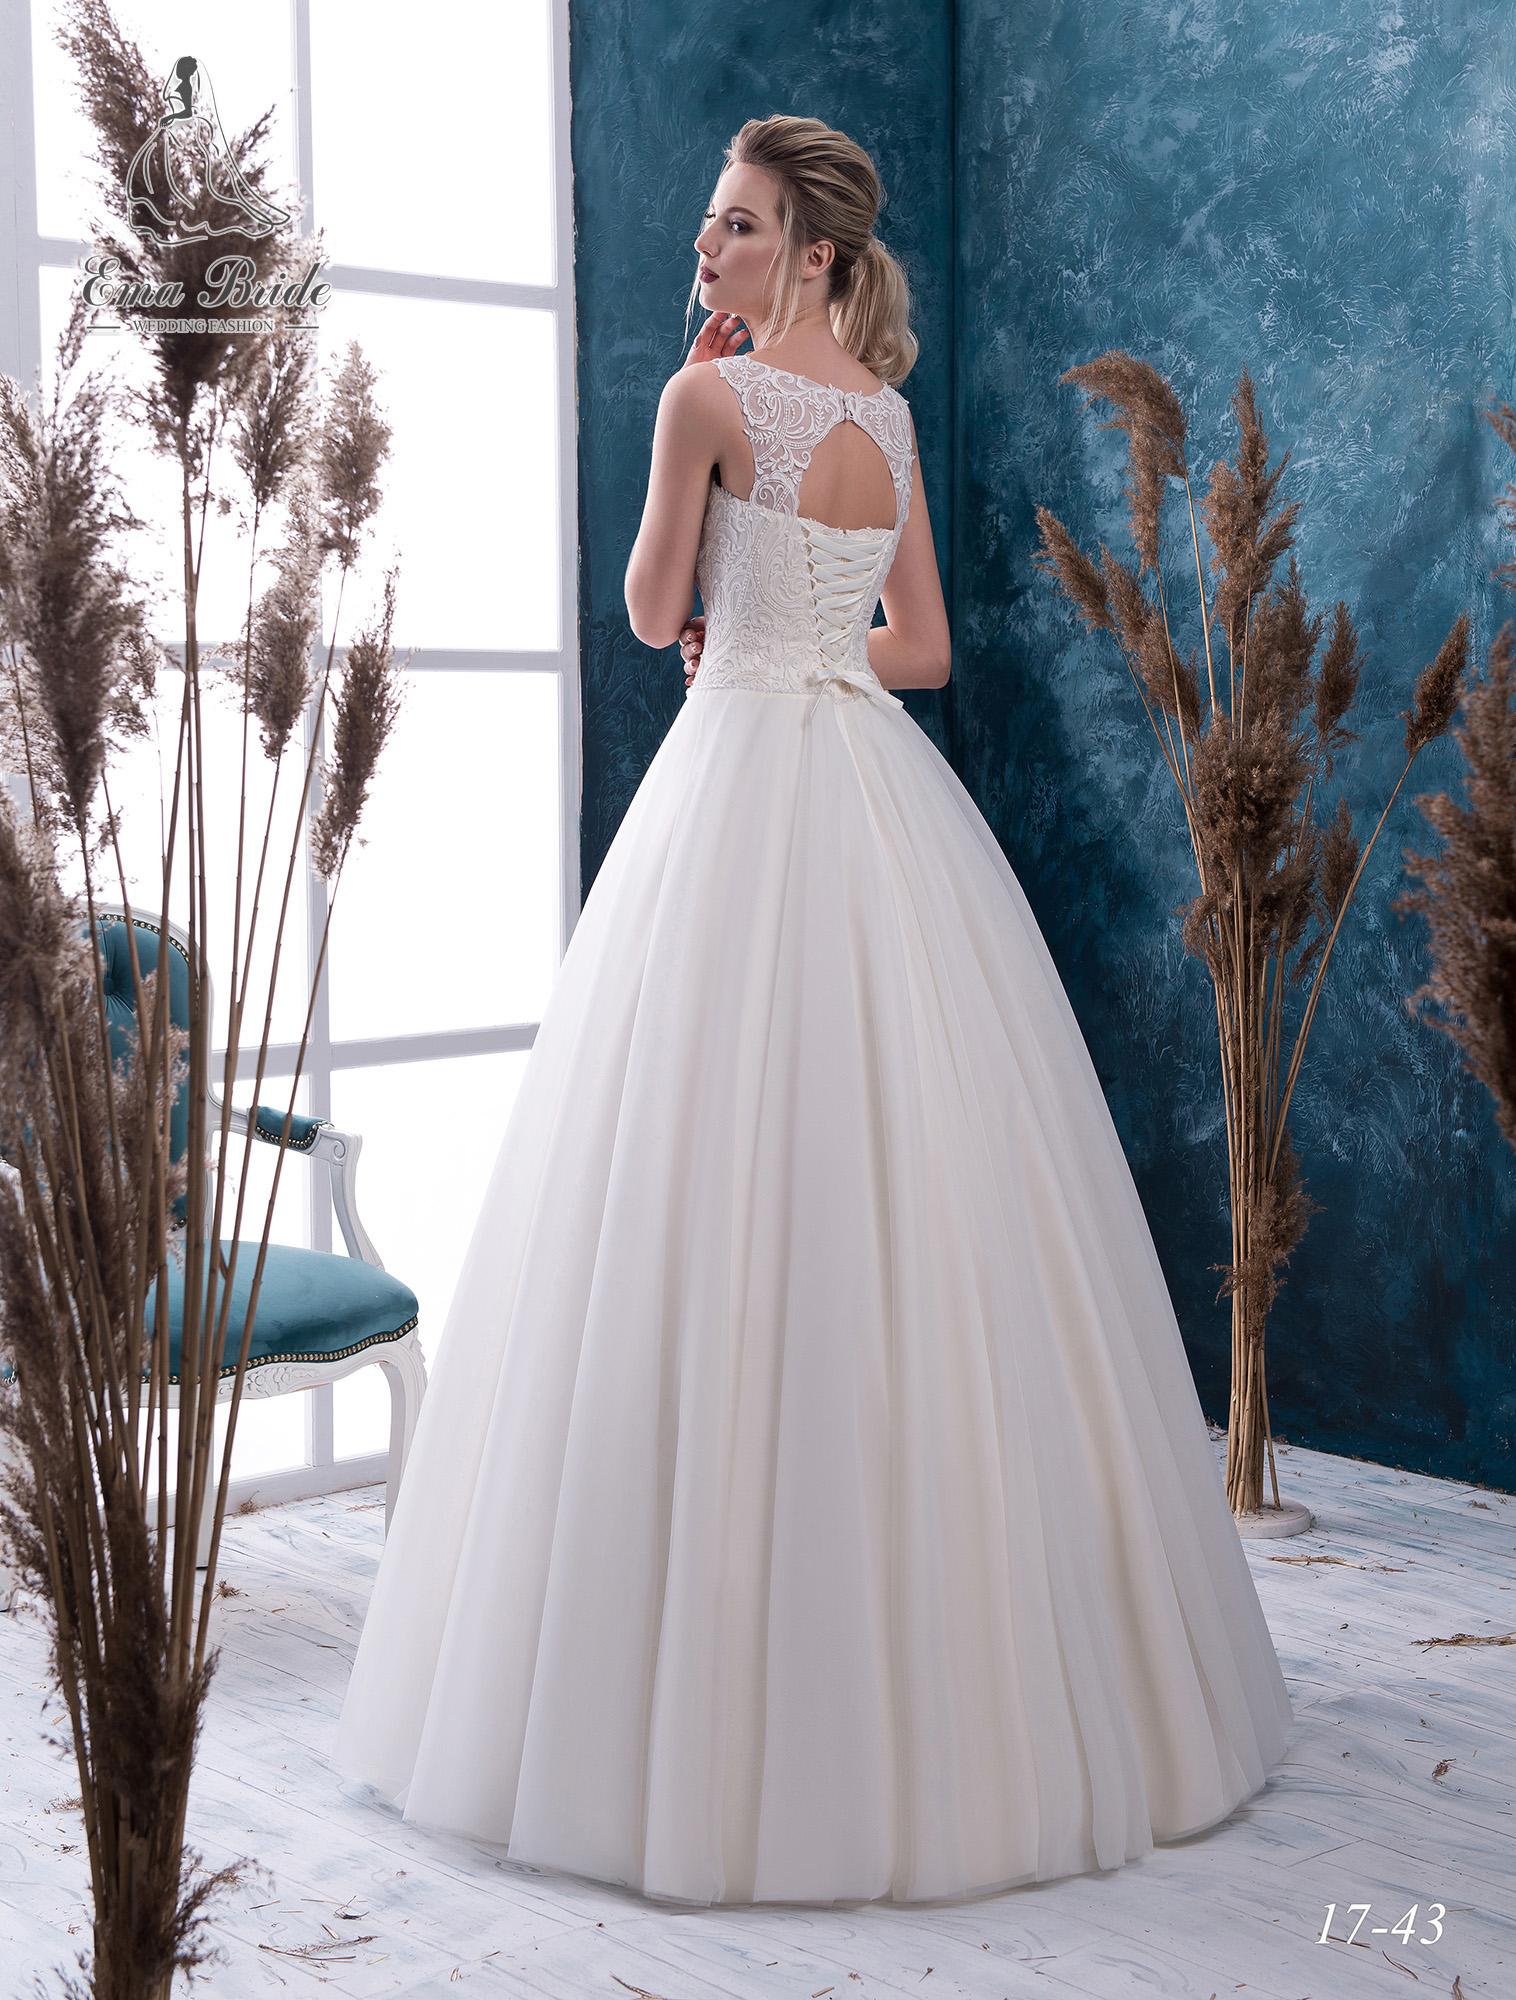 Wedding dress 17-43 wholesale-2